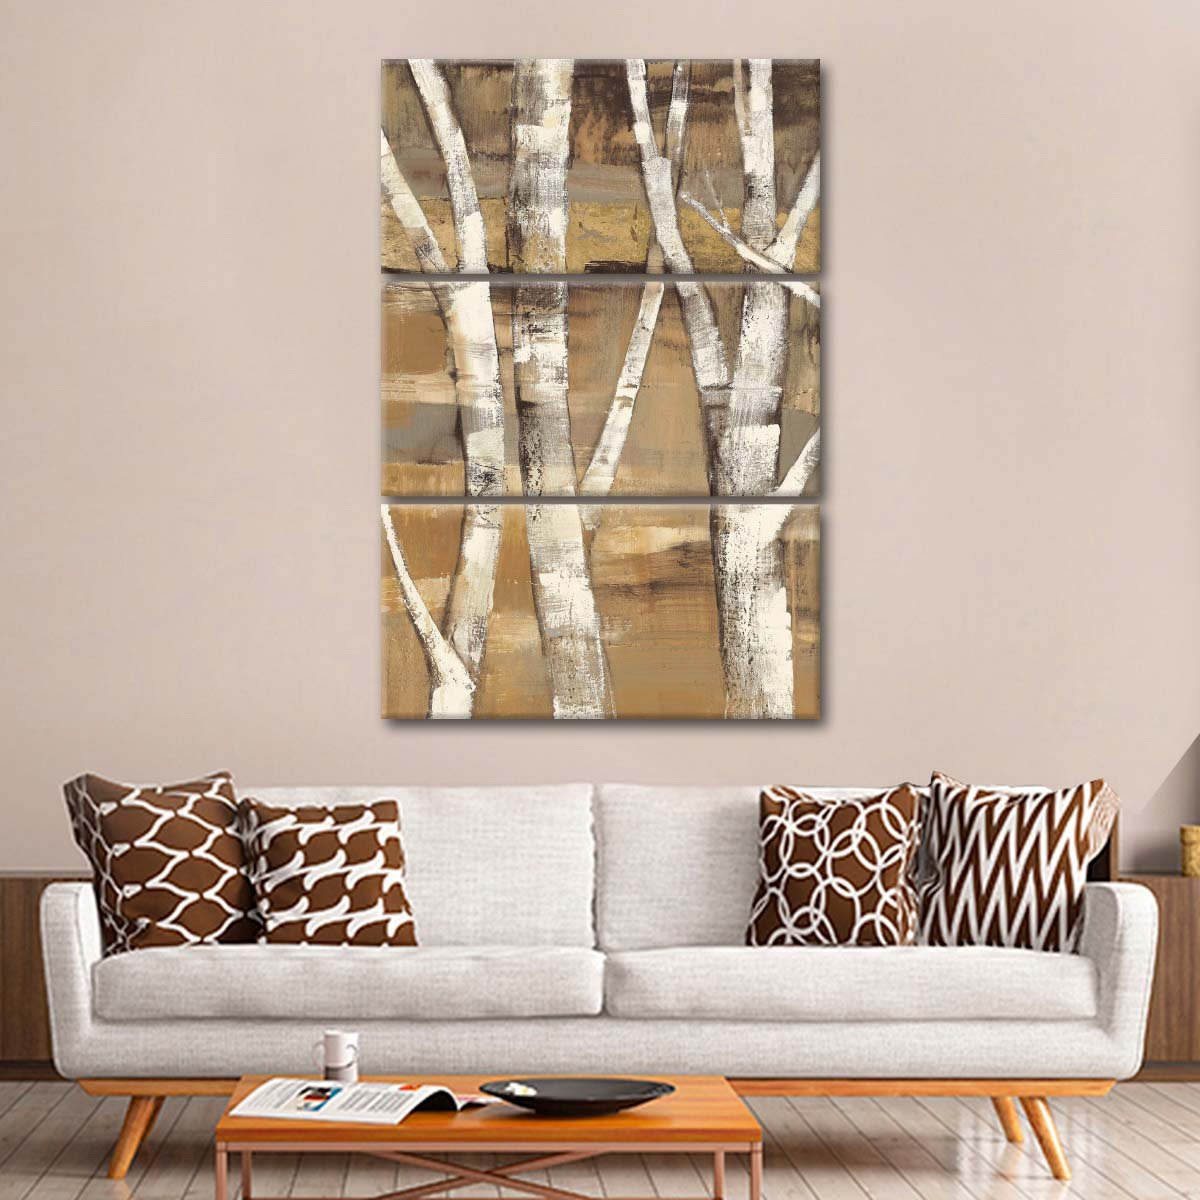 Wandering Through the Birches I Multi Panel Canvas Wall Art